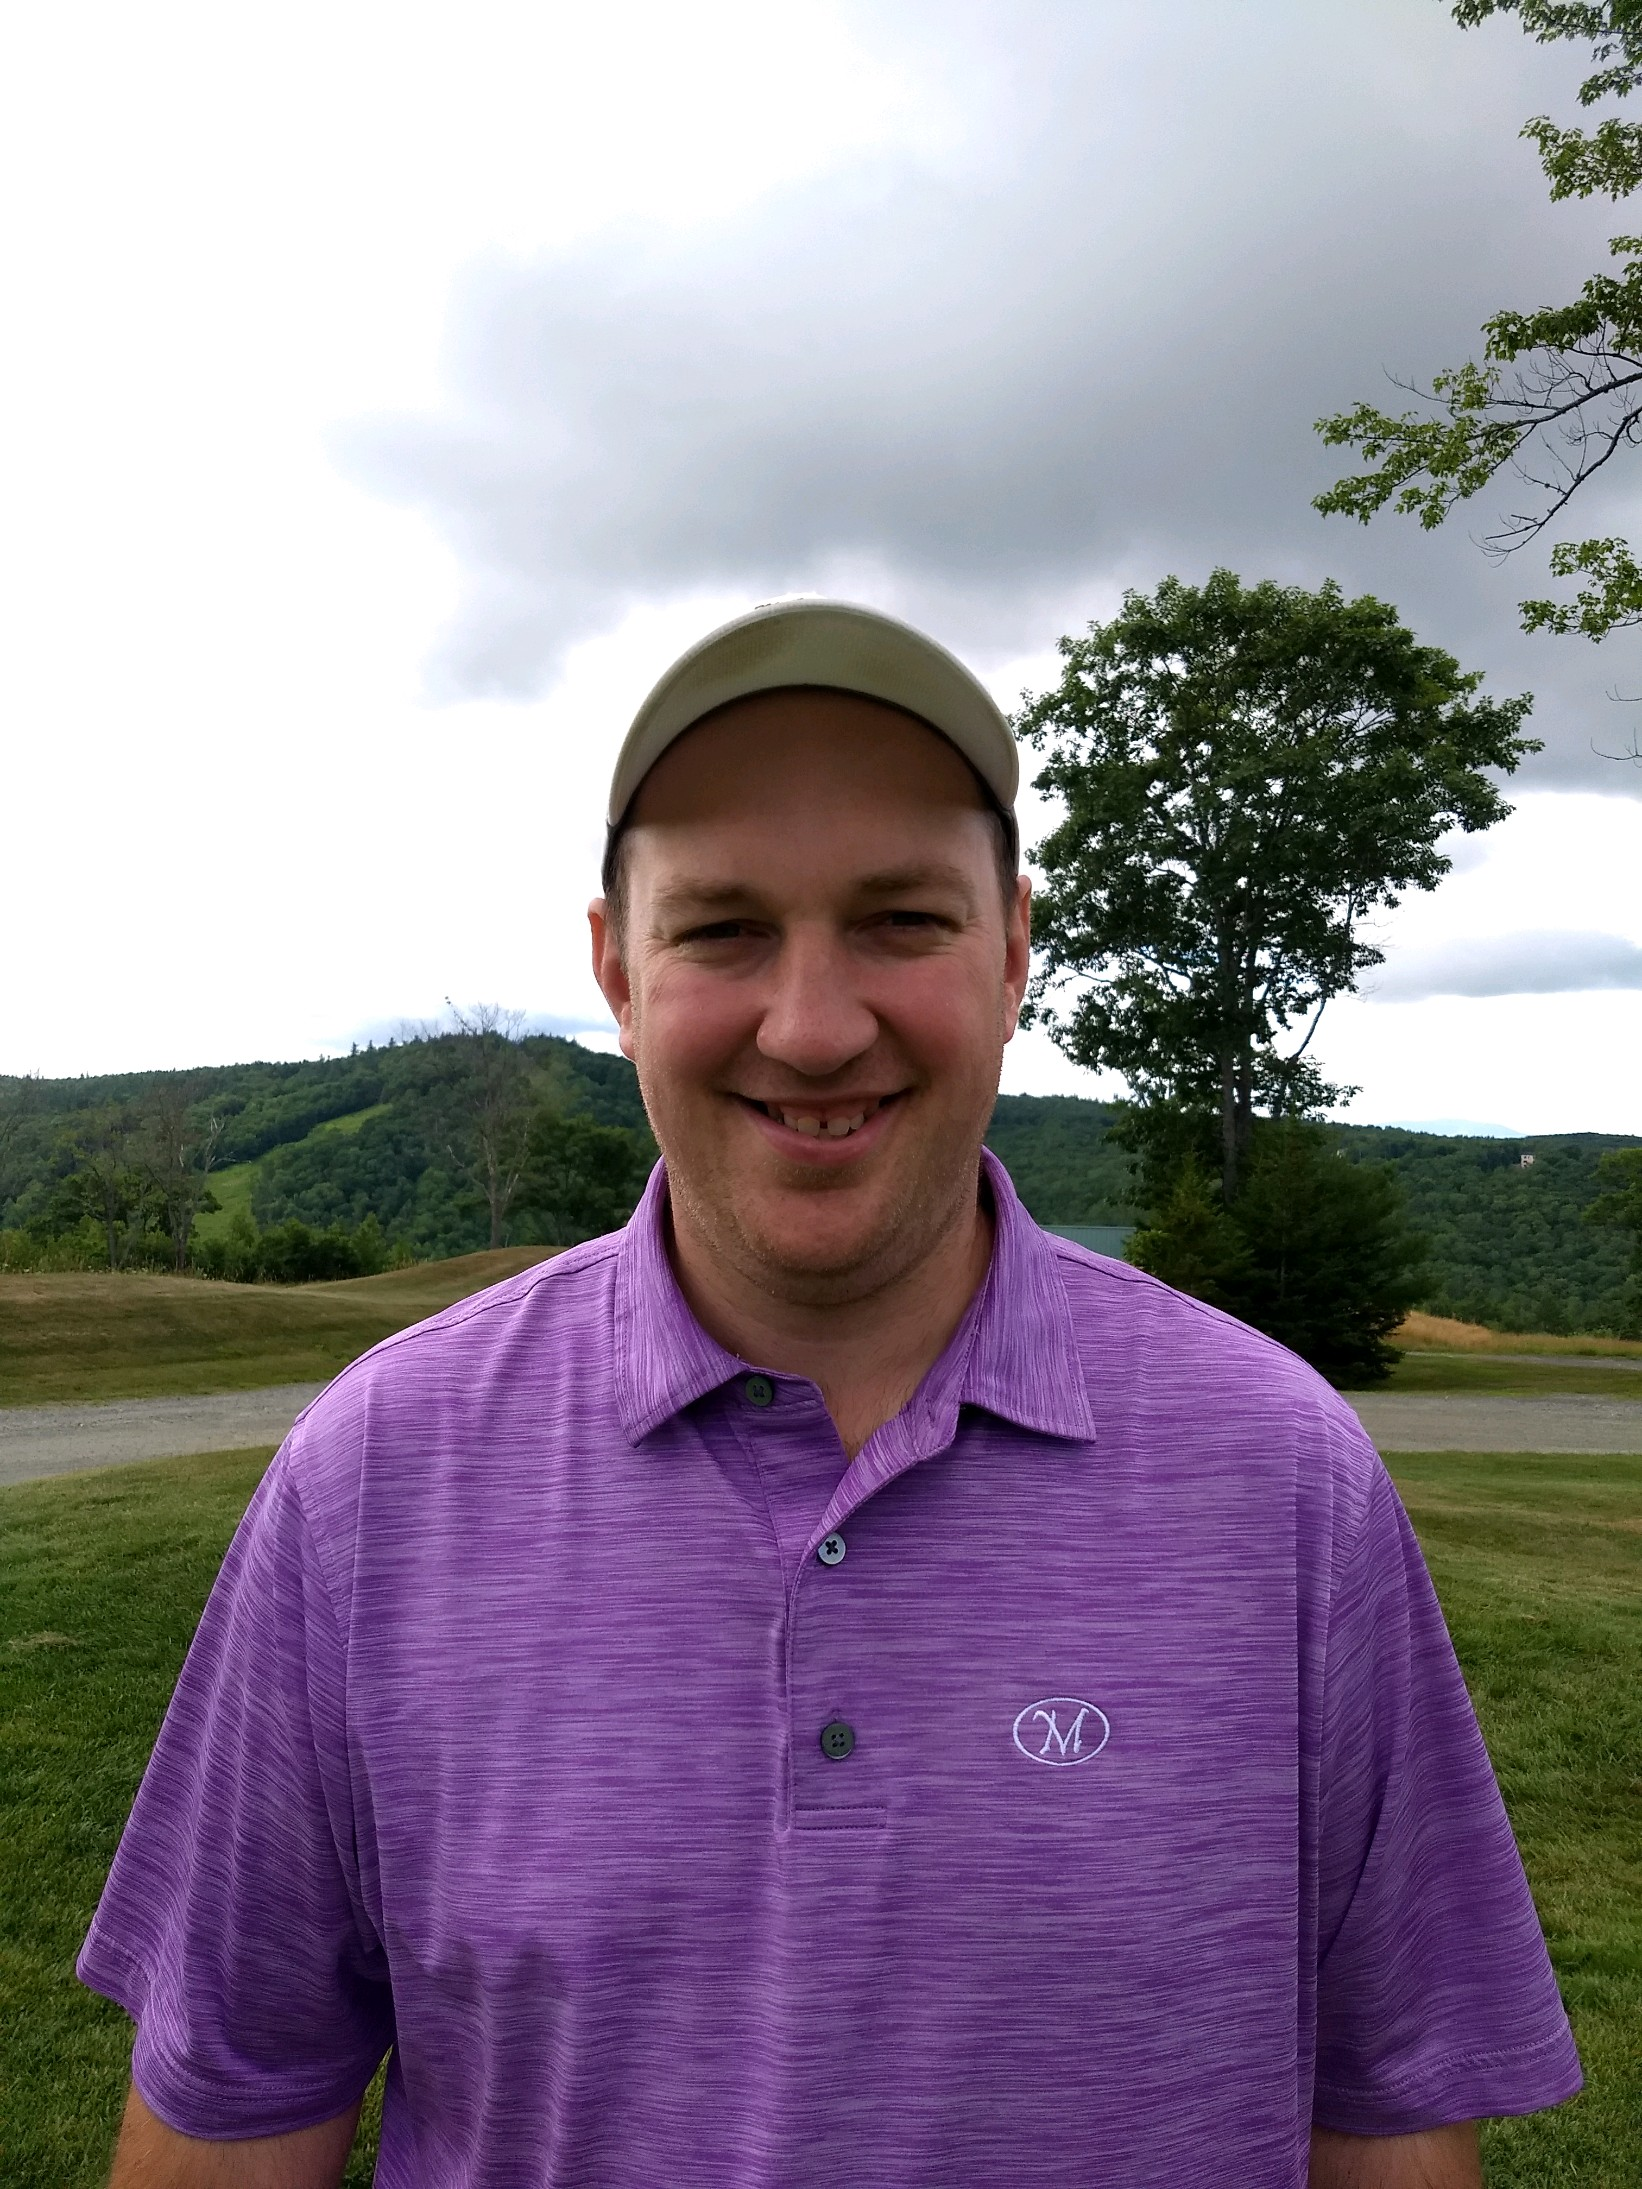 Montcalm Golf Club Announces New Assistant Pro Dustin Ribolini, NH 2020 PGA Assistant Professional of the Year